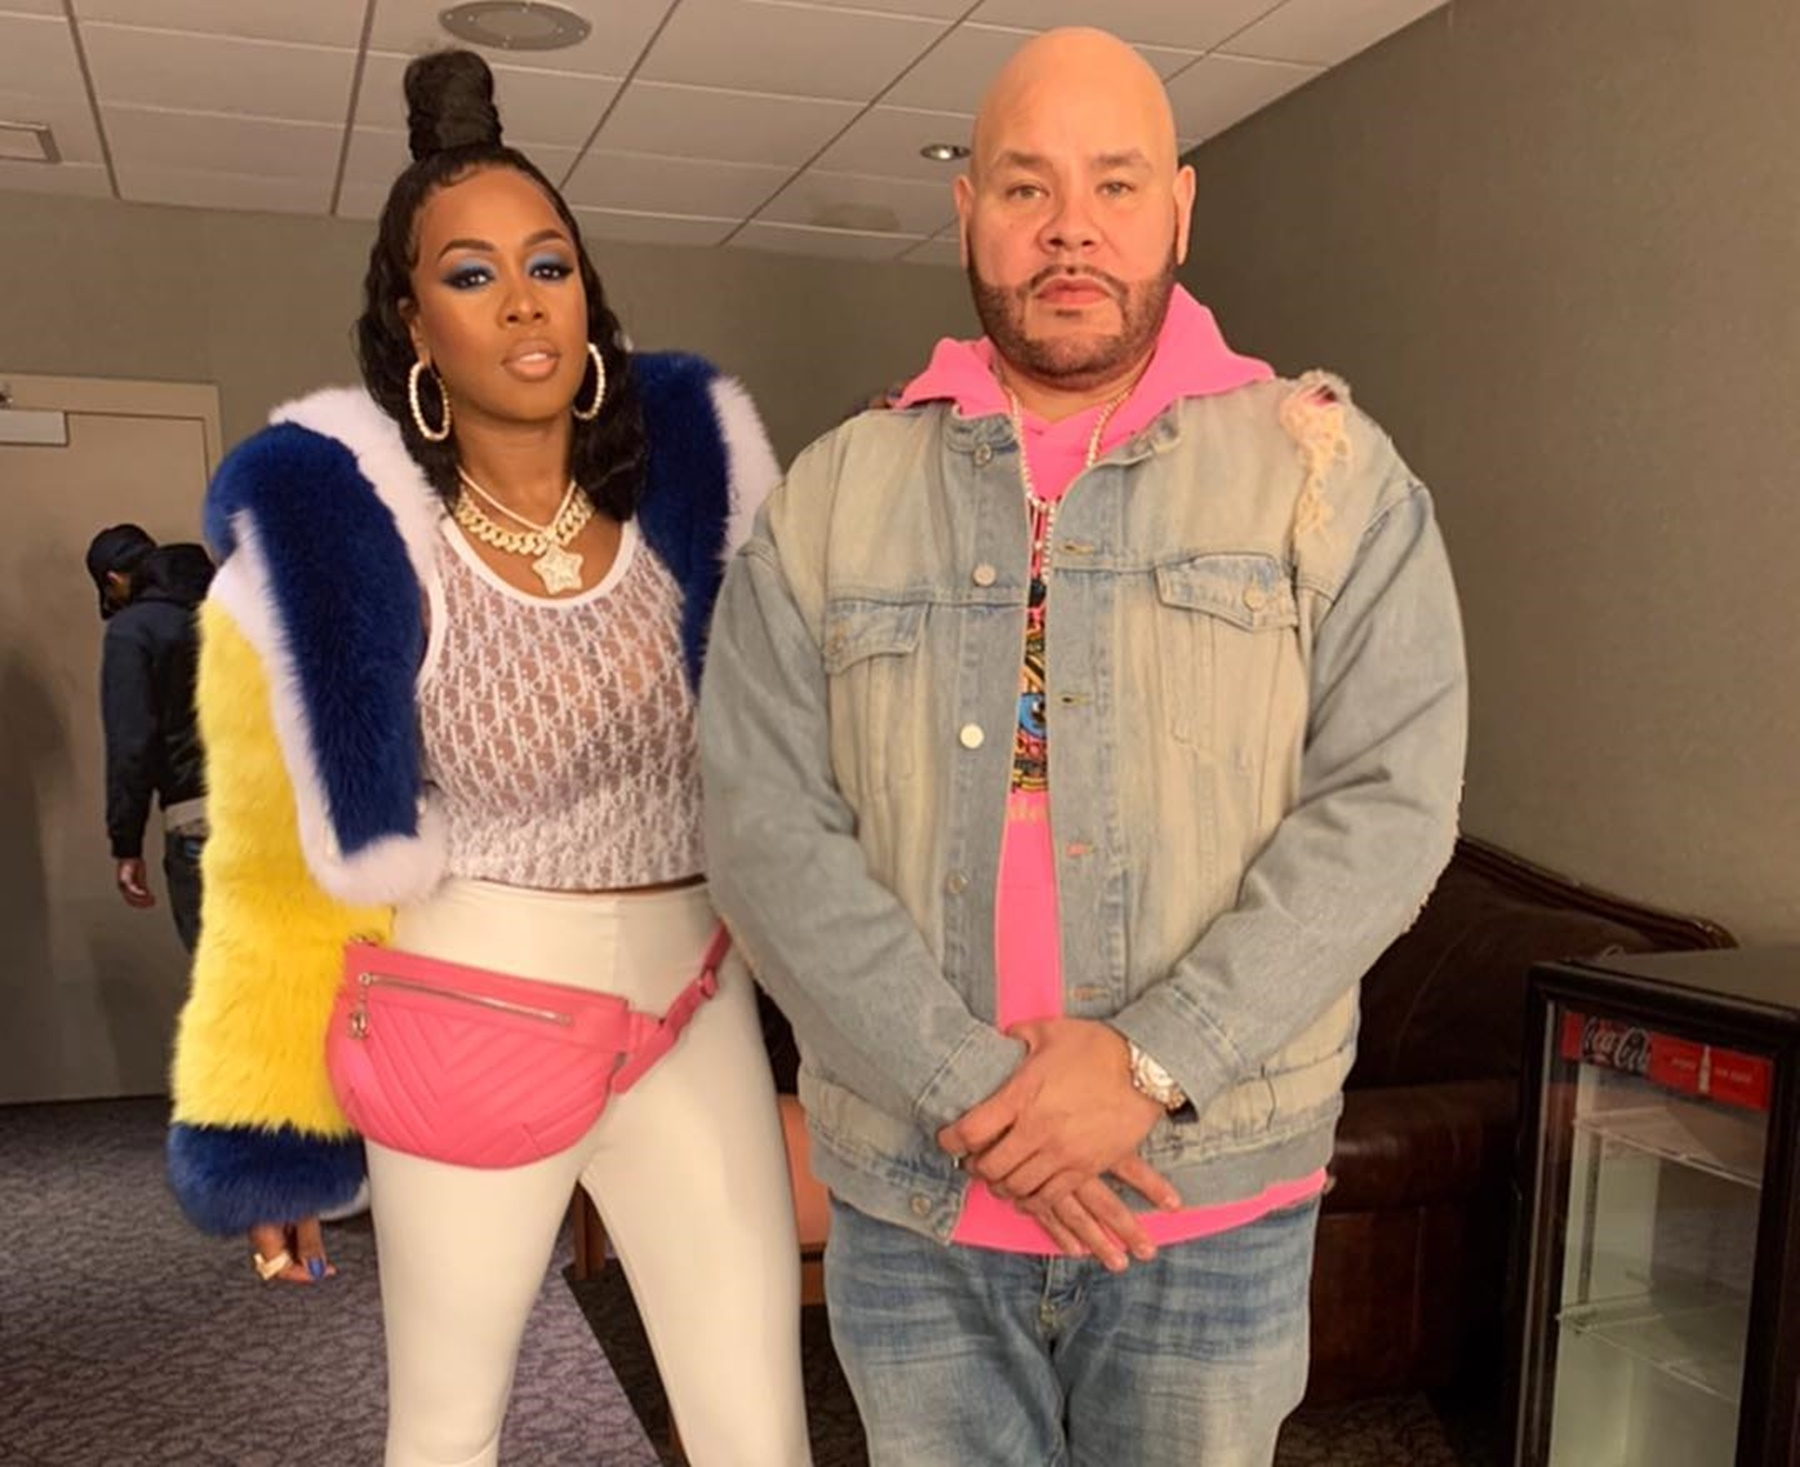 remy-mas-friend-fat-joe-defends-her-over-alleged-brittney-taylor-attack-could-she-end-up-back-in-jail